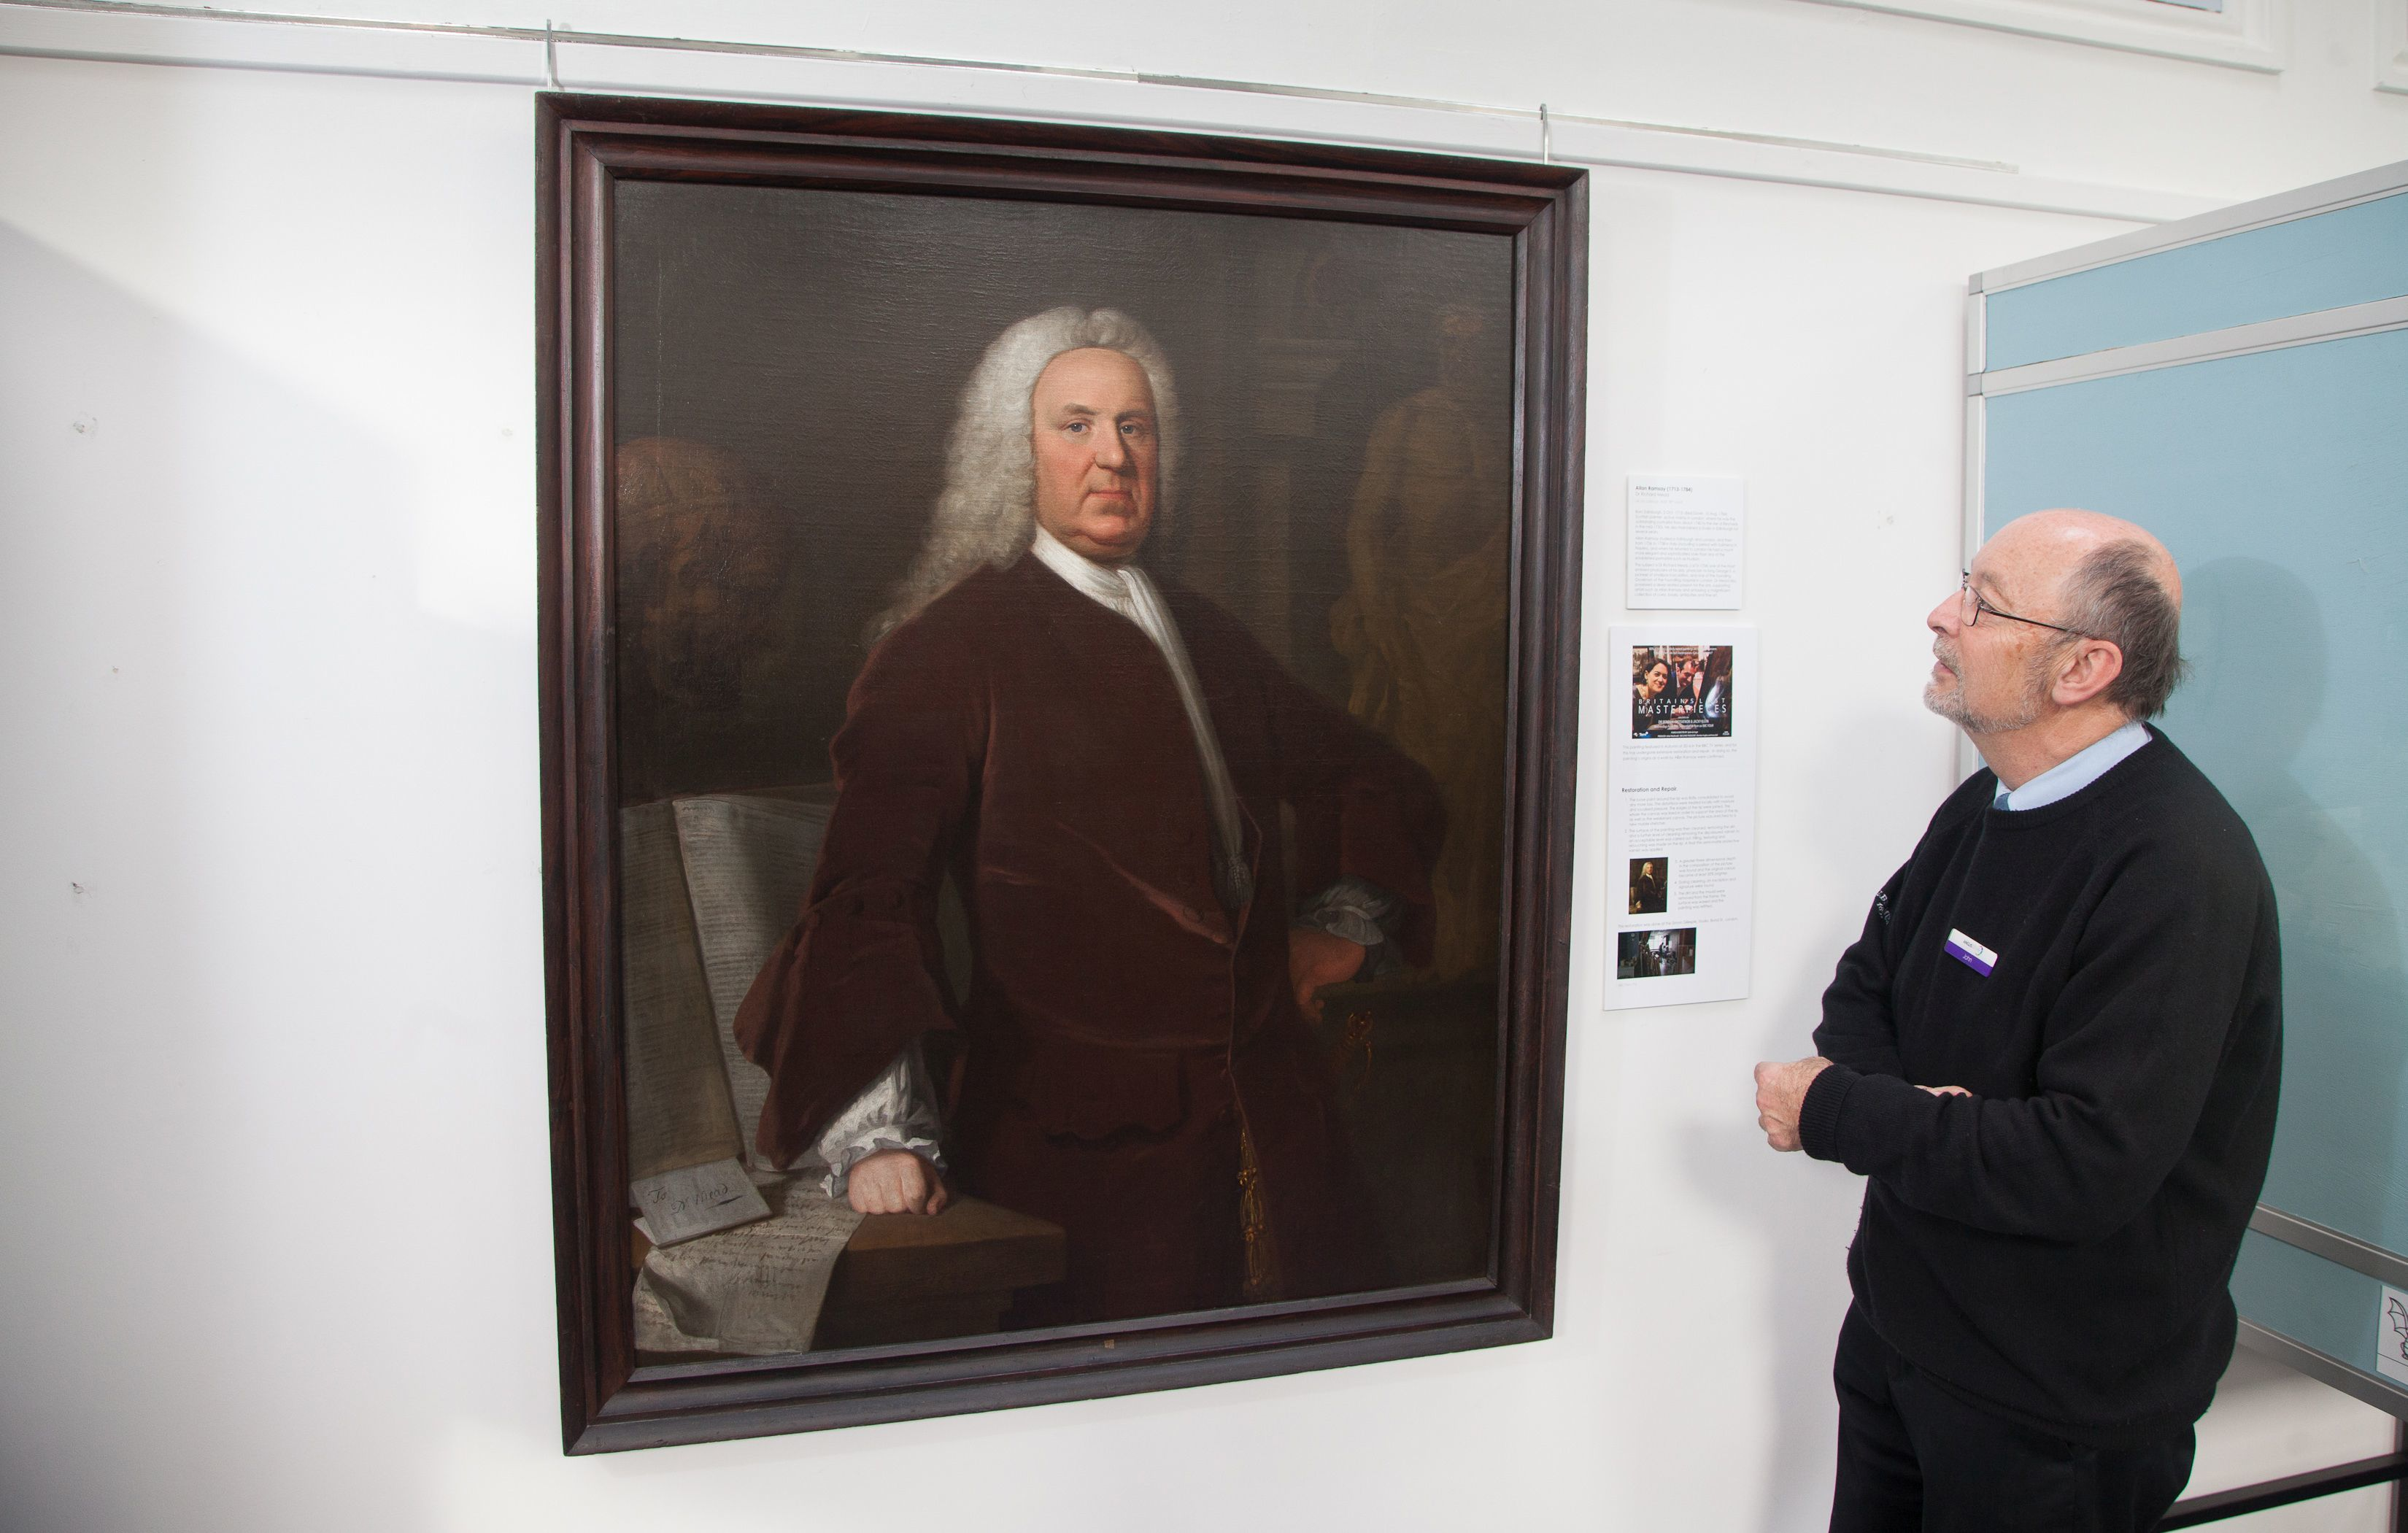 Scottish painter Allan Ramsay's portrait of Dr Richard Mead is examined by at ANGUSalive's collections officer John Johnston at Montrose Museum.